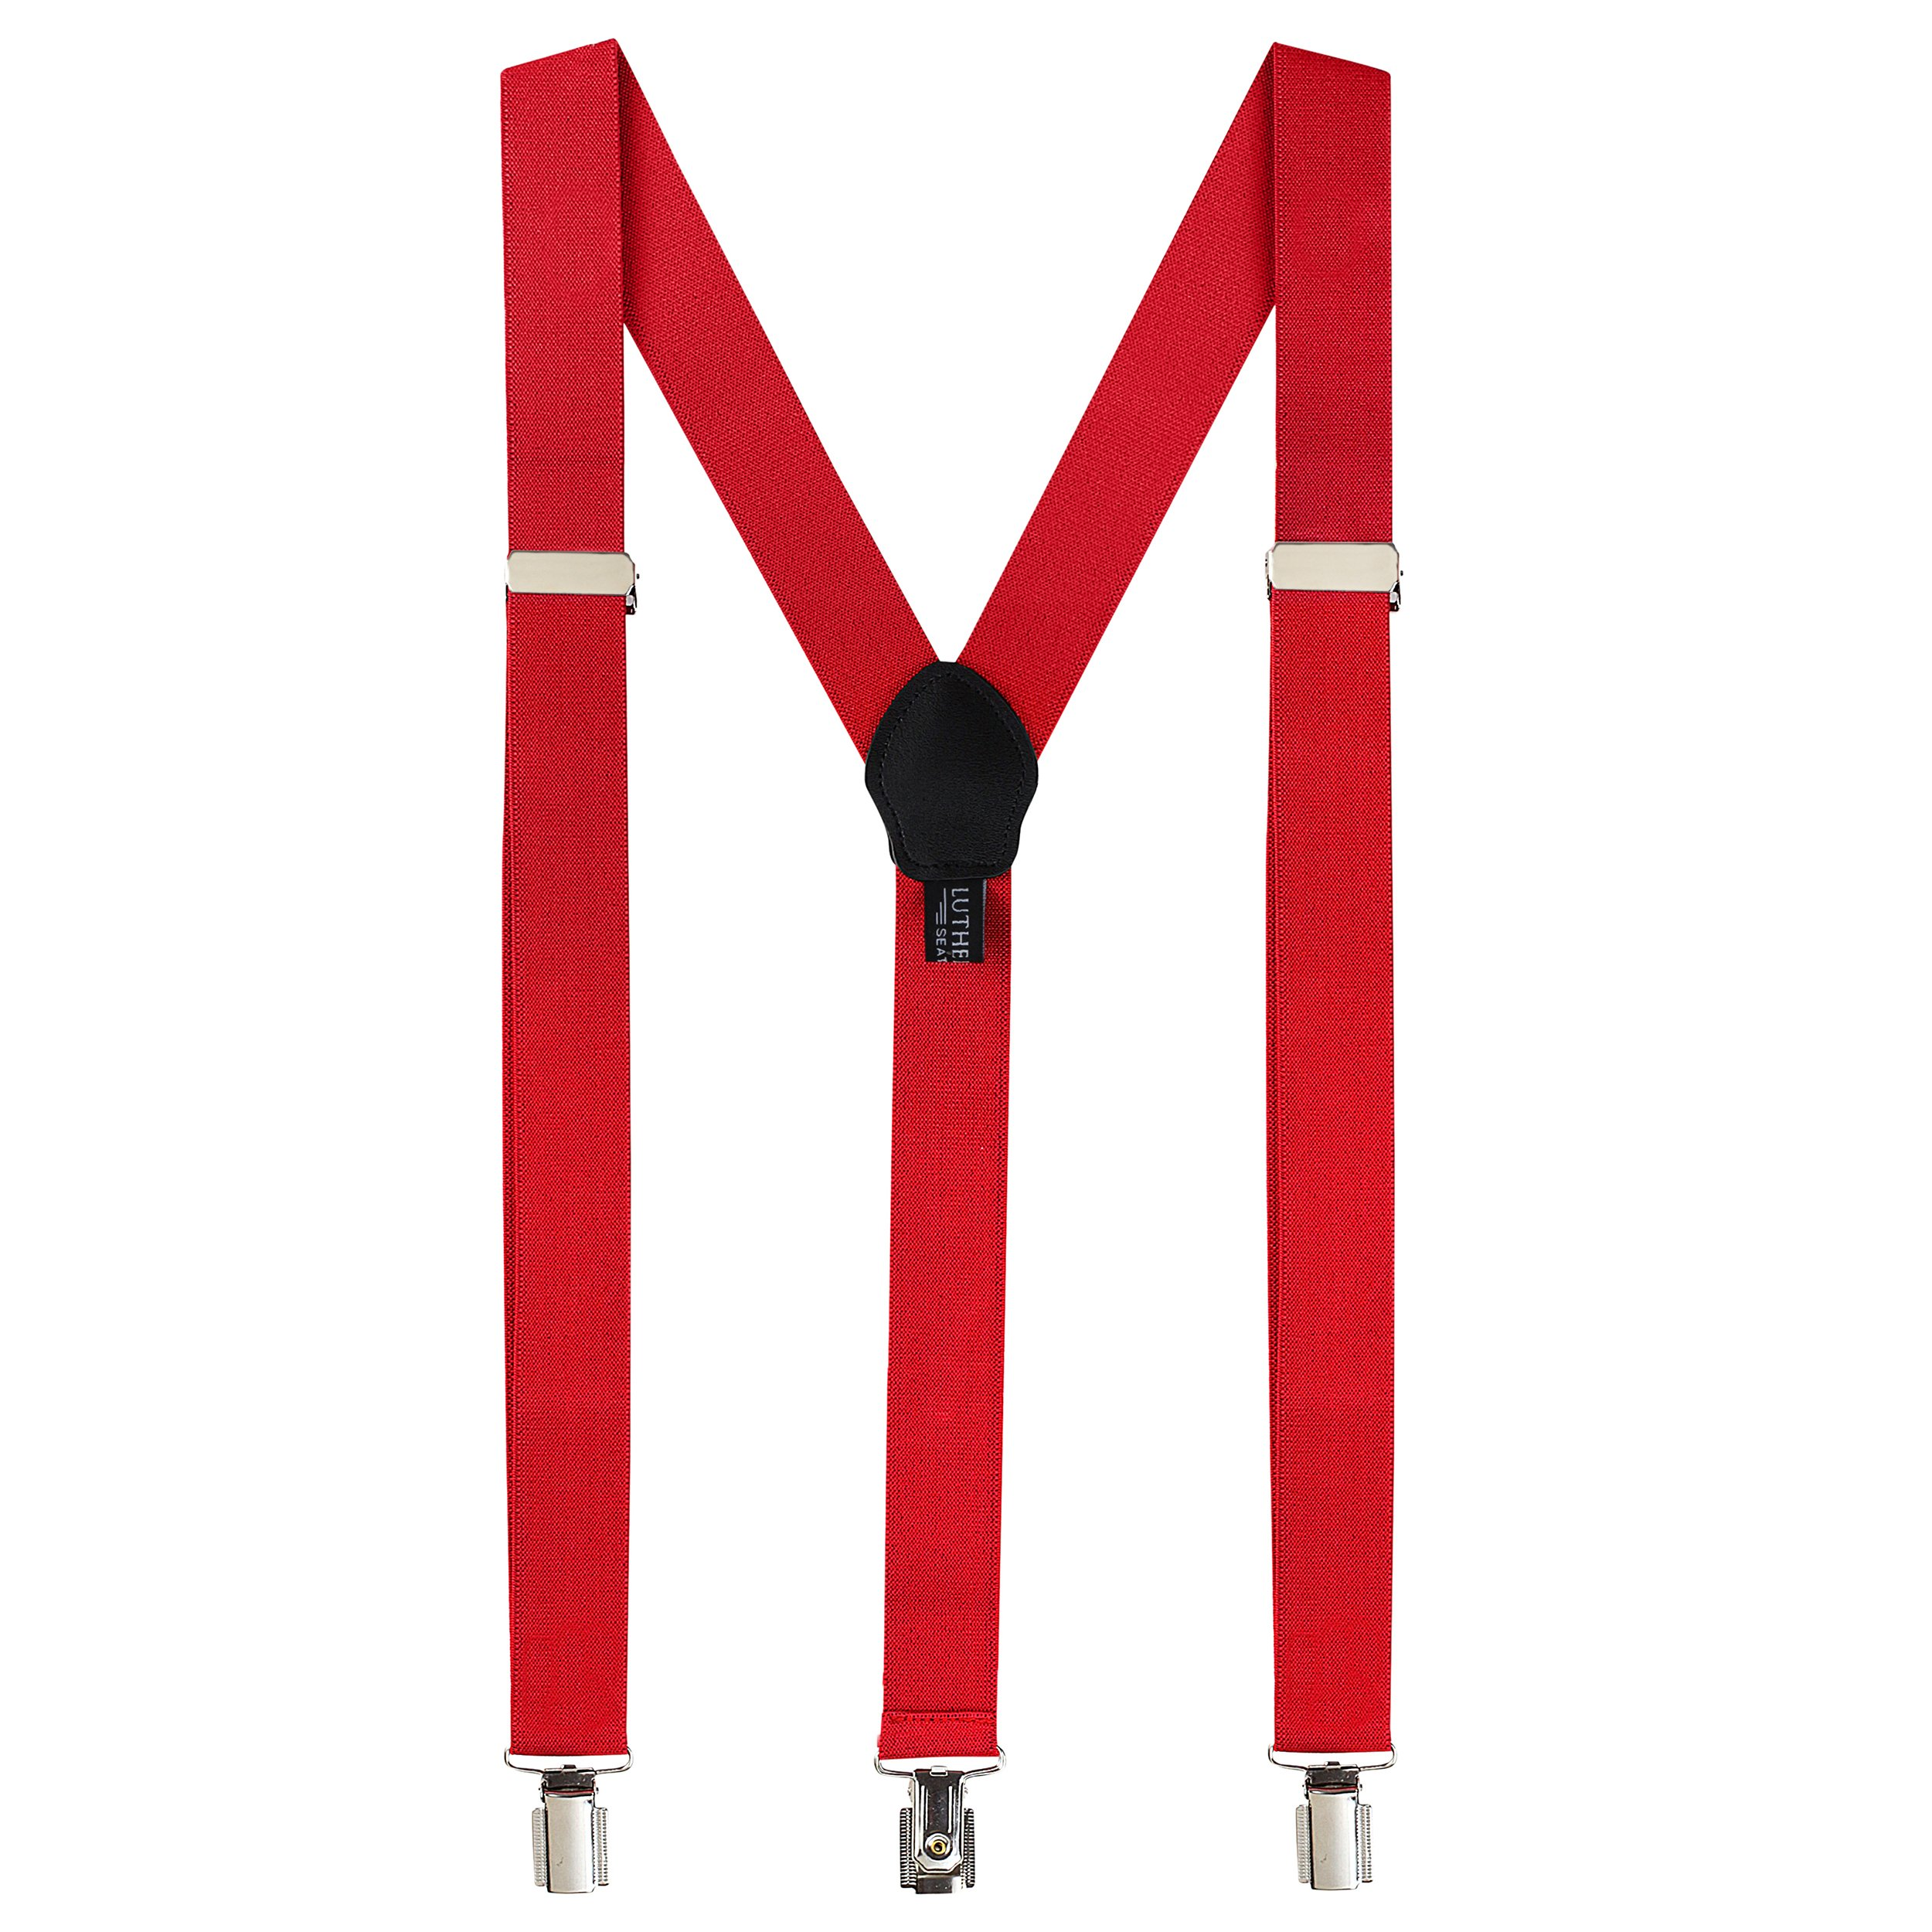 Fashion Accessories Leather Suspenders for Men: Button Pant Braces Clothes Accessory with Elastic, Y Back Design - Regular and Tall Sizes, Red